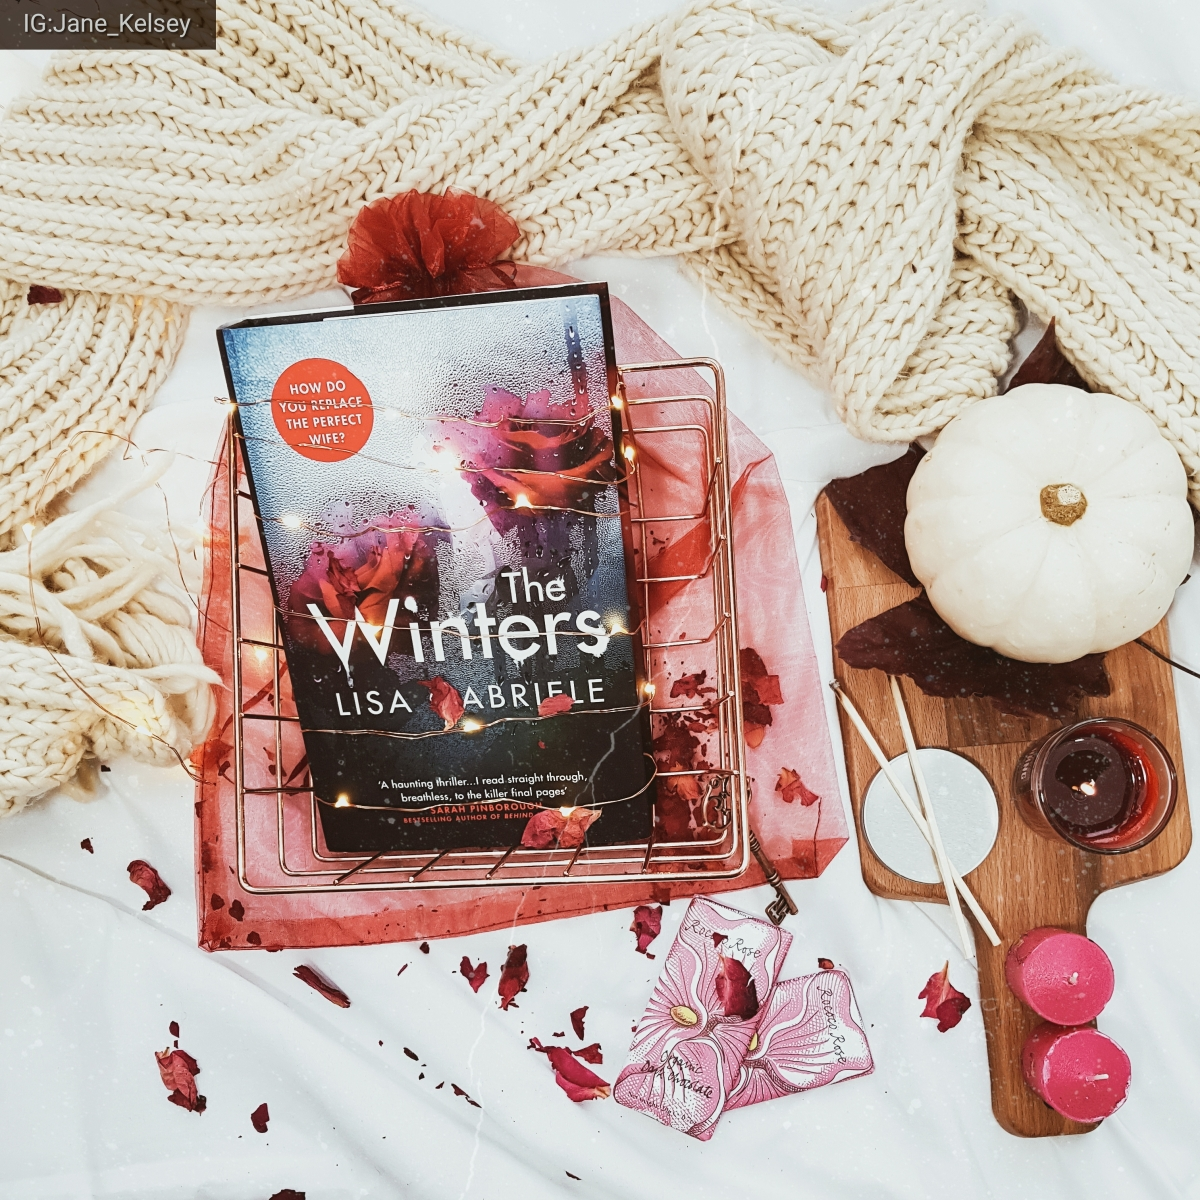 #bookmail: The Winters by Lisa Gabrielle – a Rebecca inspirednovel.